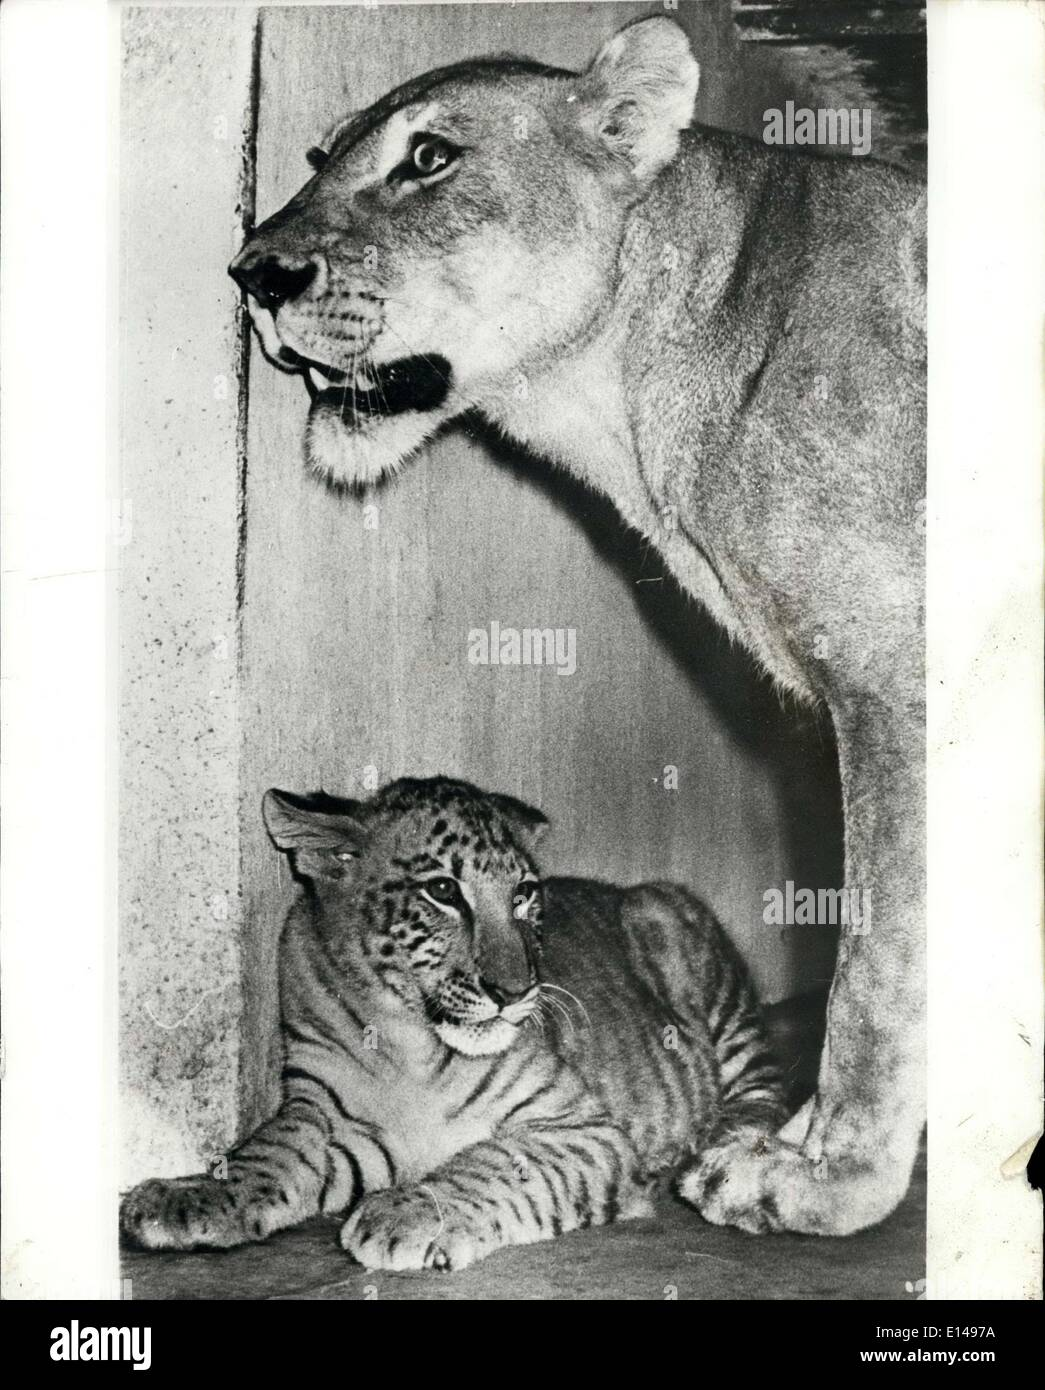 Apr. 17, 2012 - Calcutta zoo's Tigon : The Tigon is a product of mating a tiger and a lioness -and after several Stock Photo